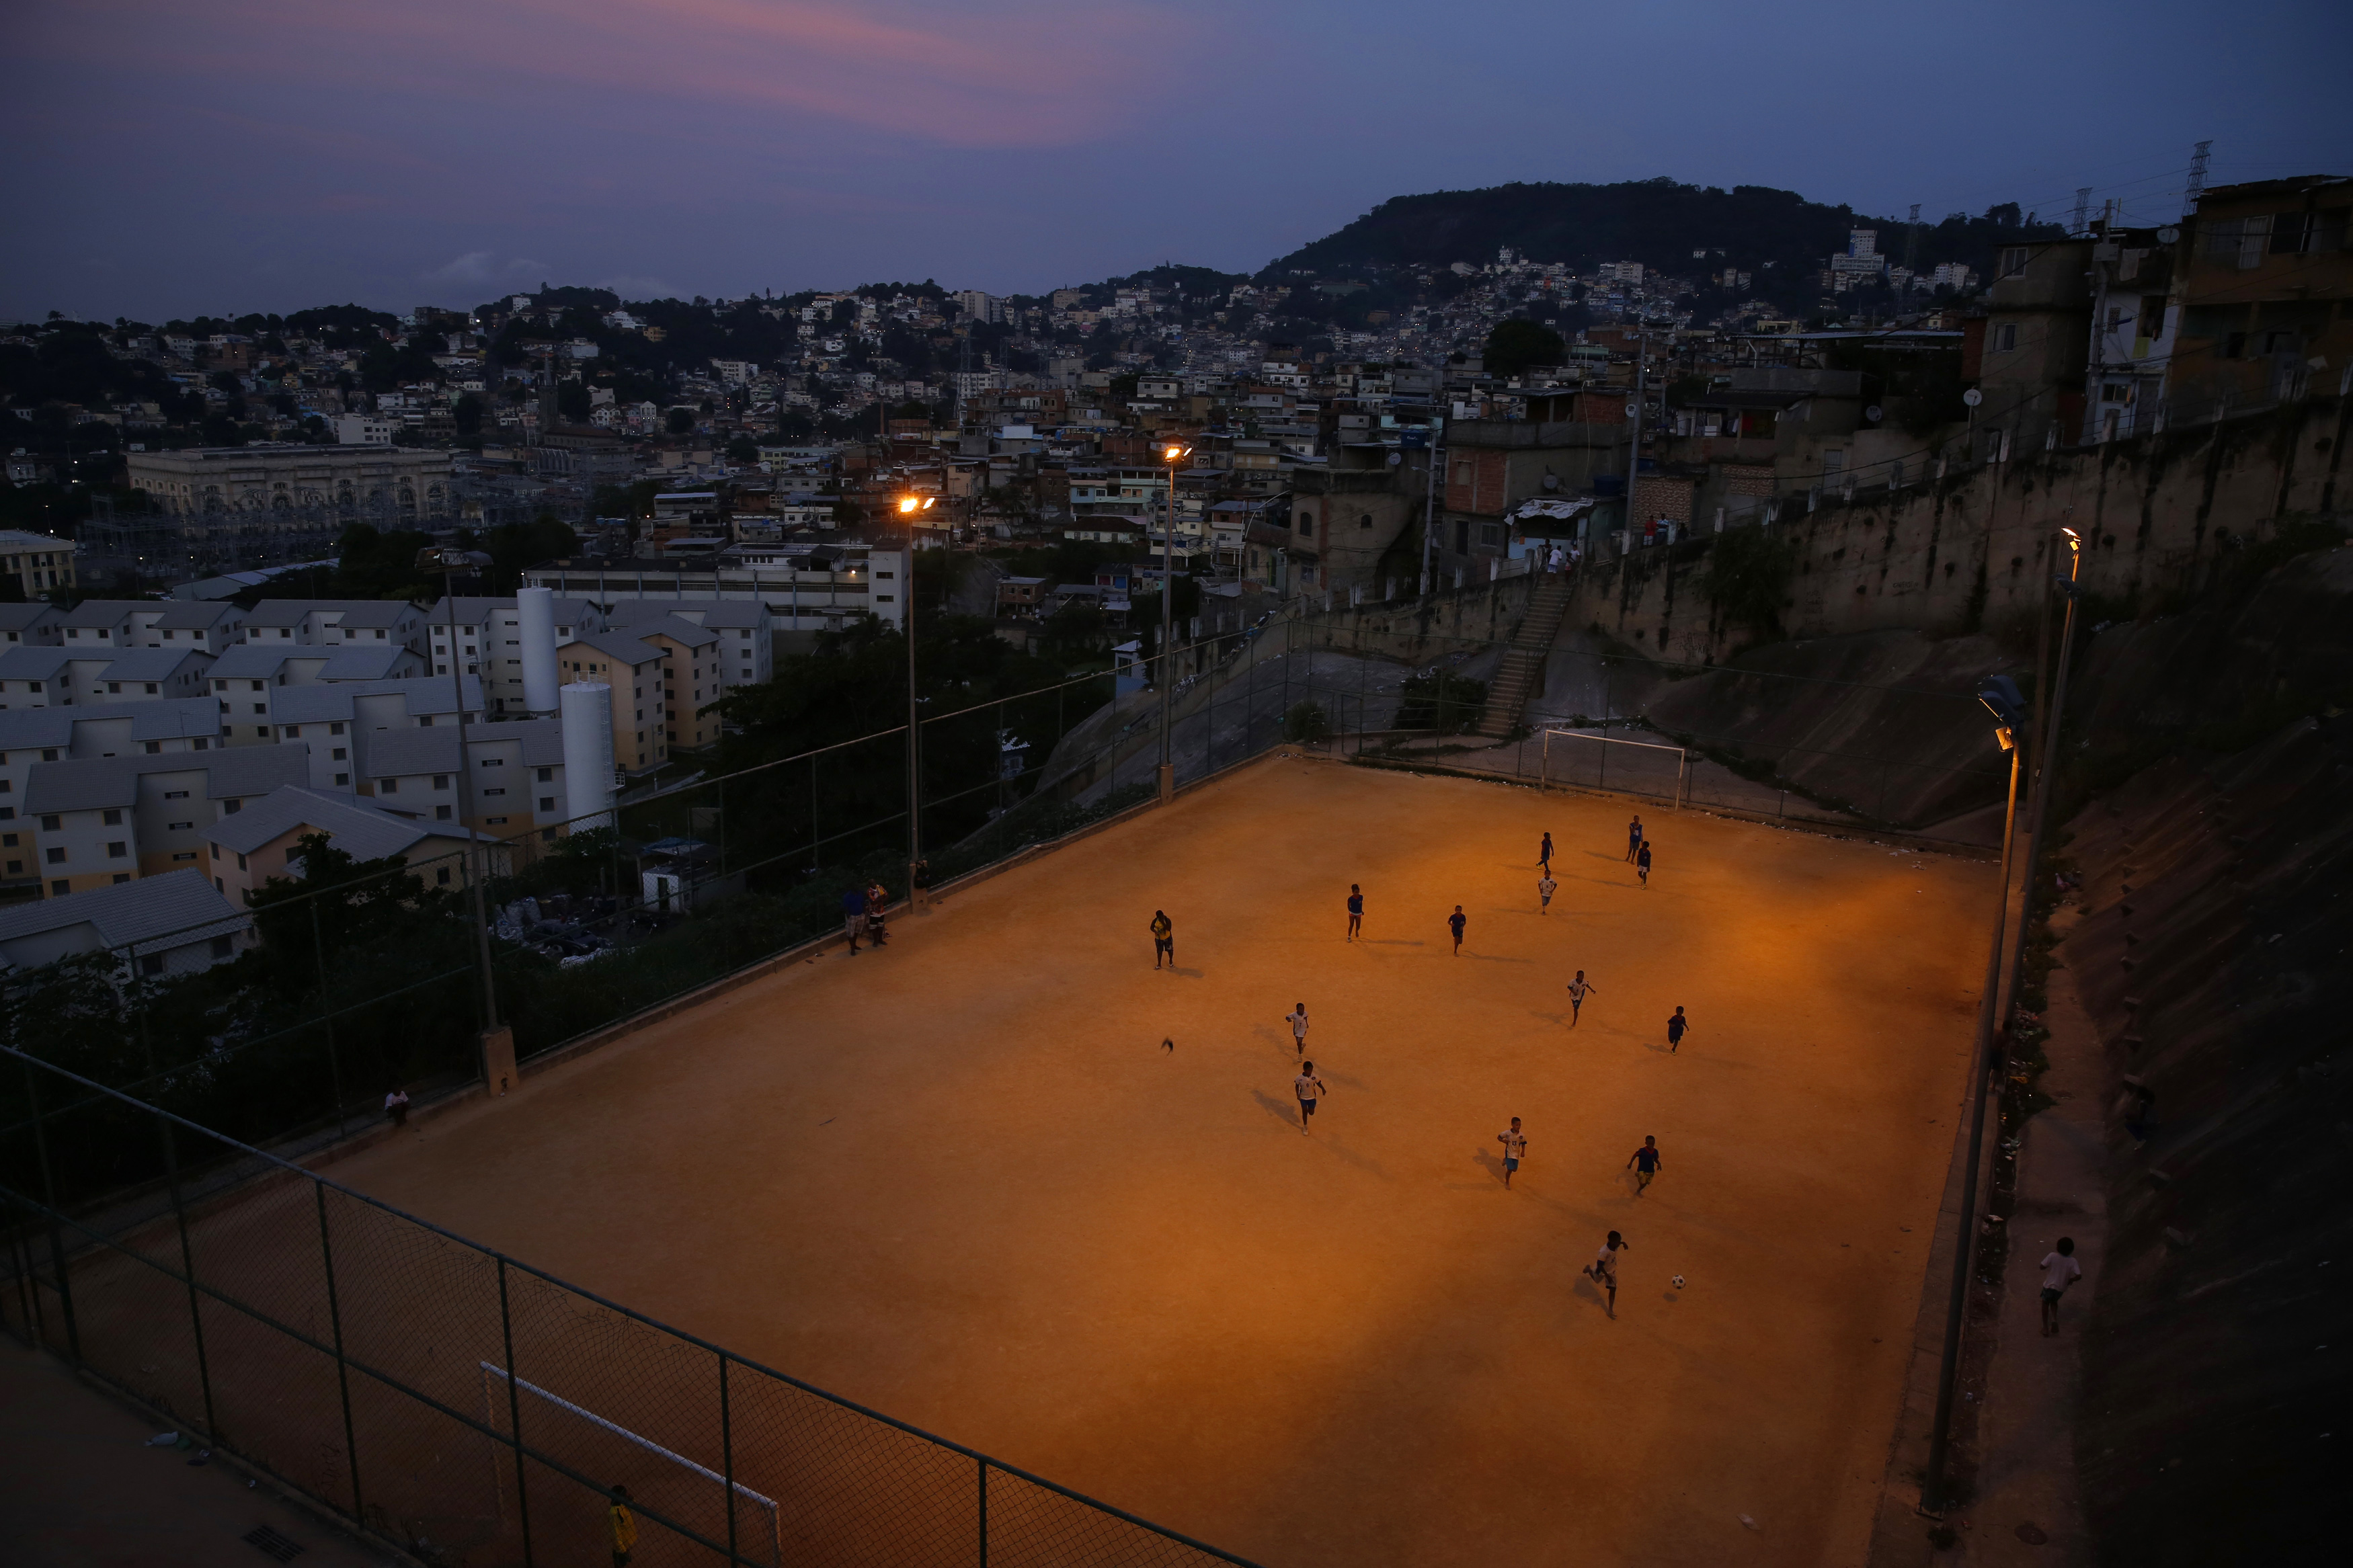 Kids play soccer during a training session at Sao Carlos slum in Rio de Janeiro May 15, 2014.